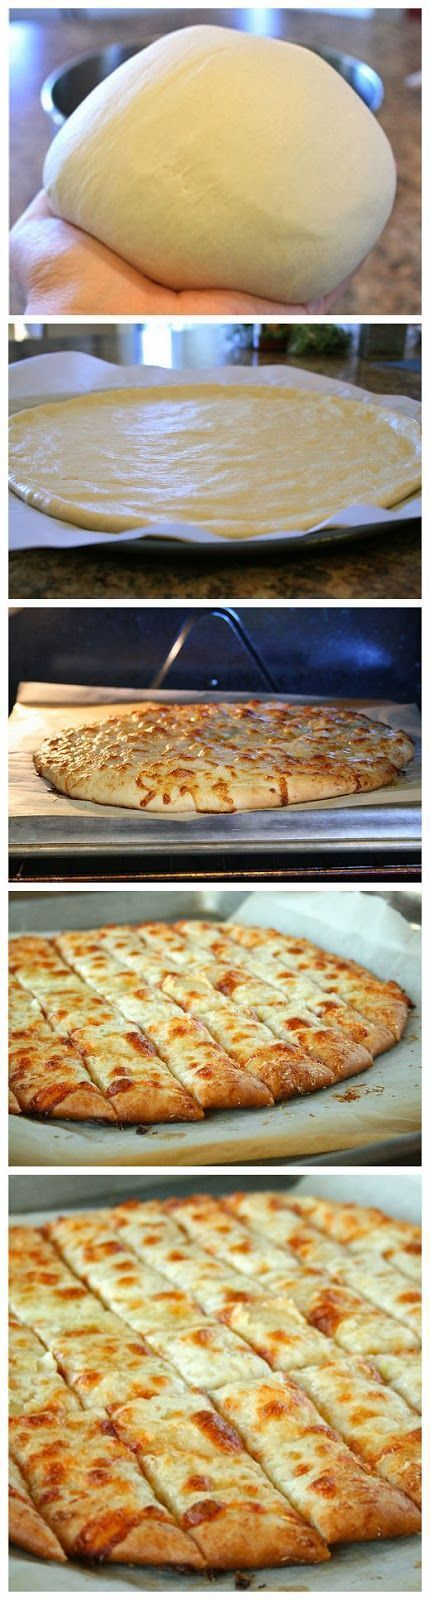 Fail-Proof Pizza Dough and Cheesy Garlic Bread Sticks {just like in restaurants!} So surprise your family with this best Pizza recipe, we guarantee you won't go wrong! Enjoy!